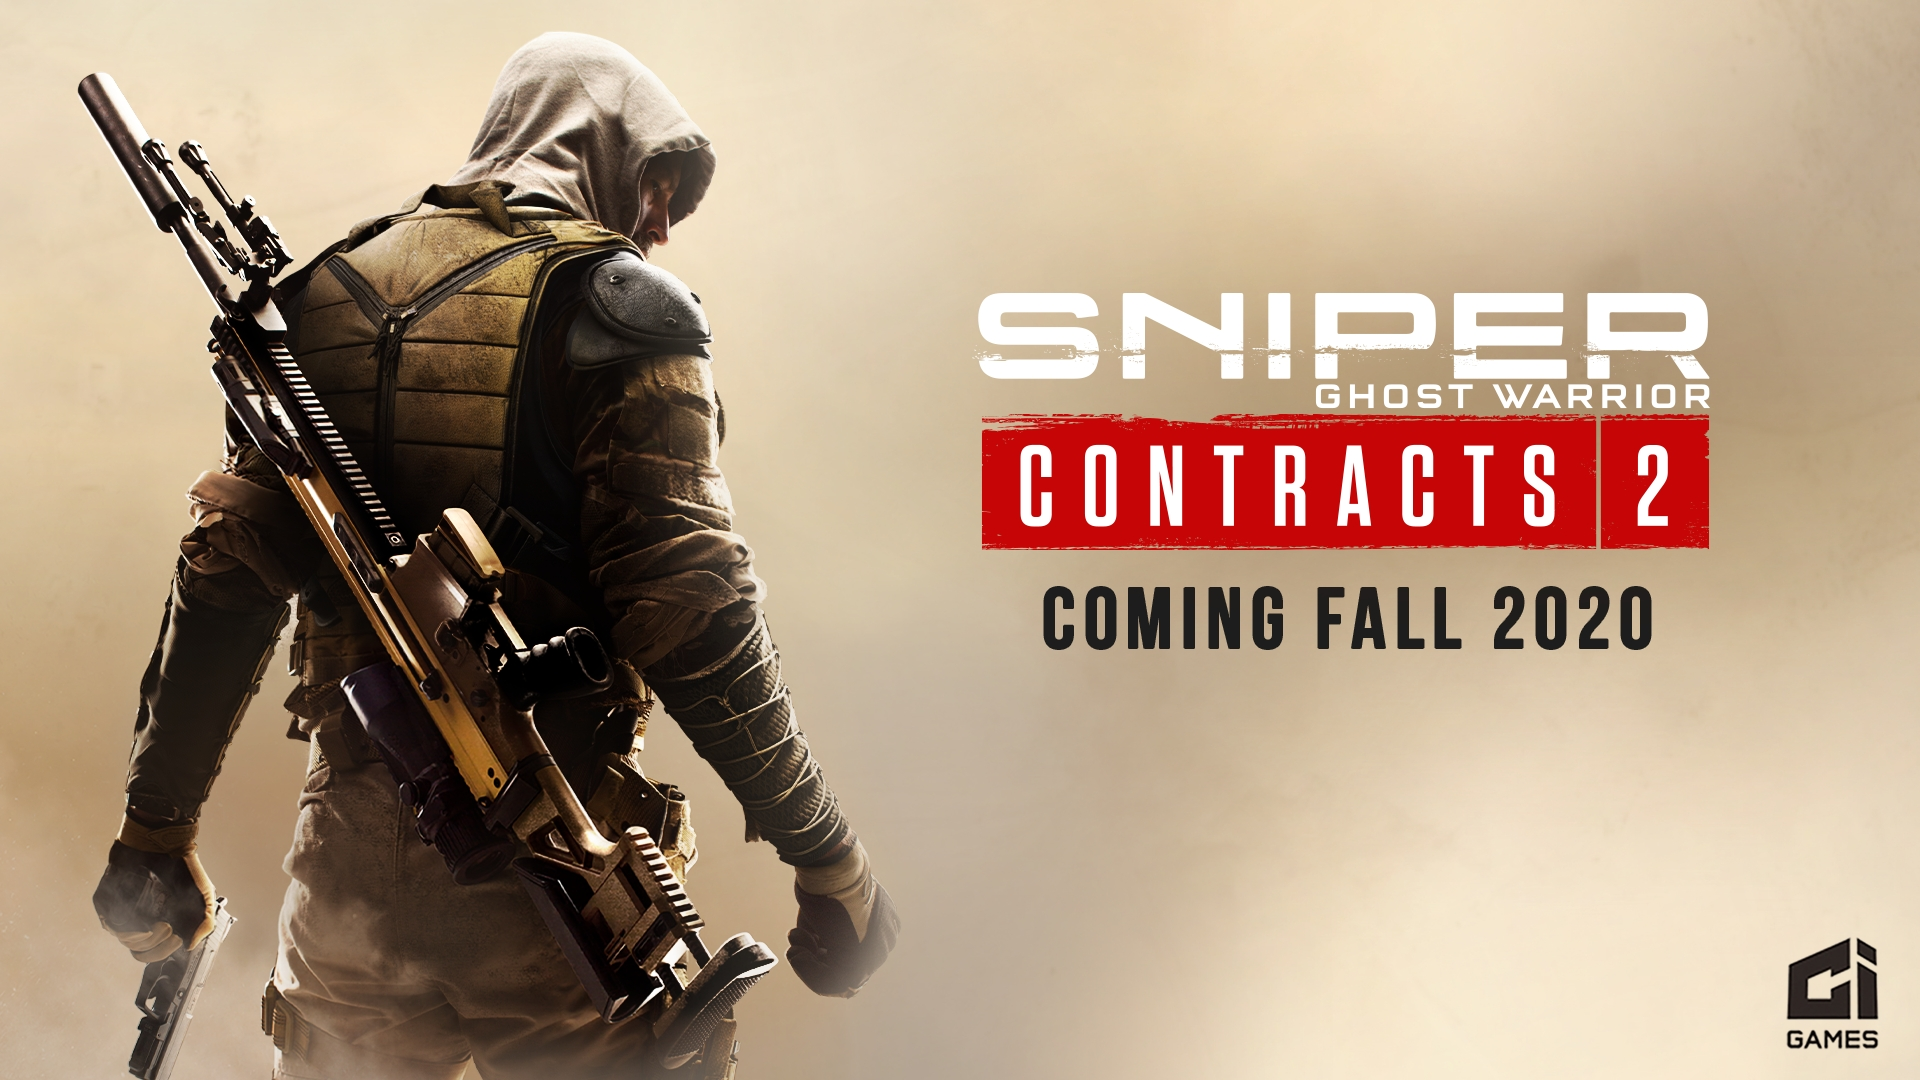 Sniper: Ghost Warrior Contracts 2 / twitter.com